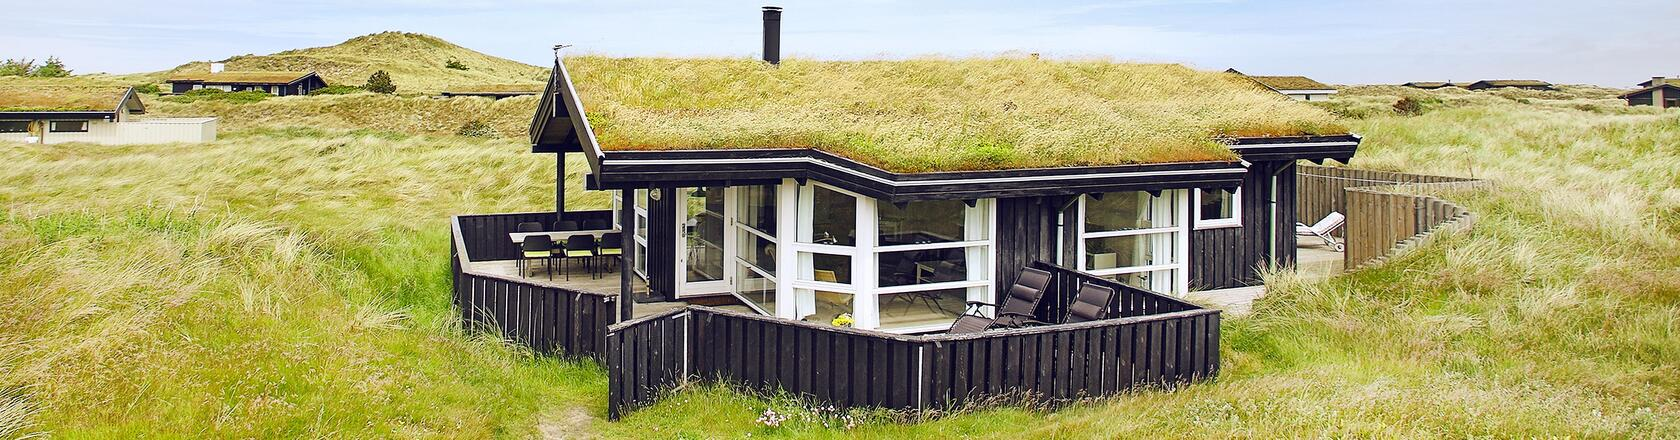 Hurup Thy in Denmark - Rent a holiday home  with DanCenter